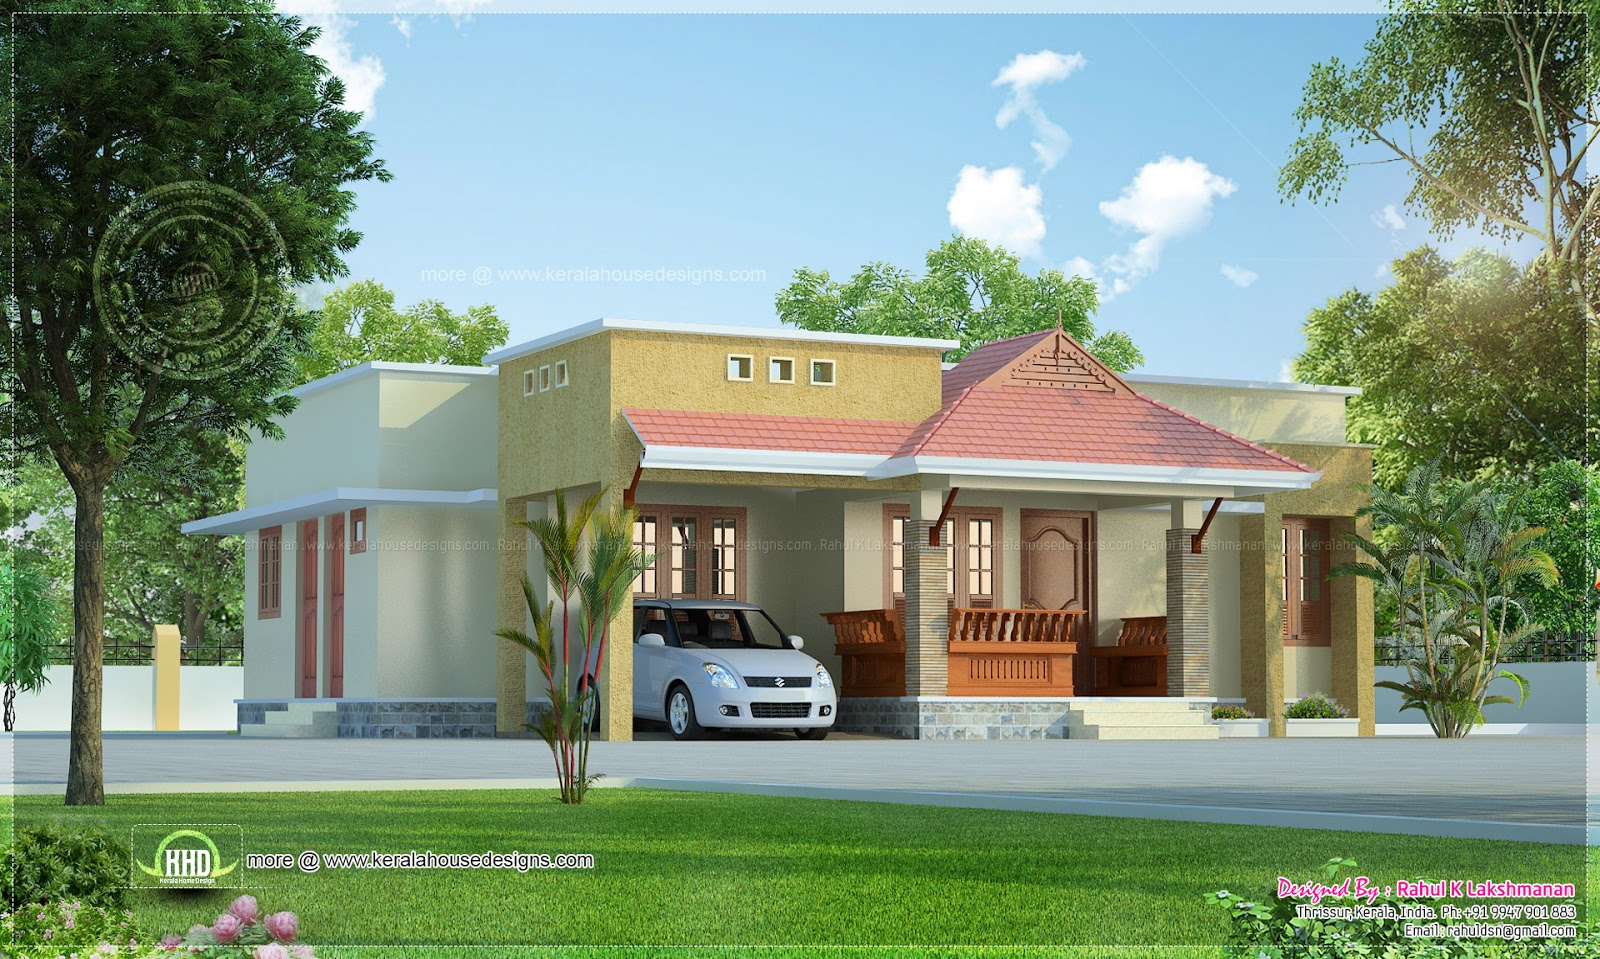 Small kerala style beautiful house rendering kerala home design and floor plans Small chic house plans